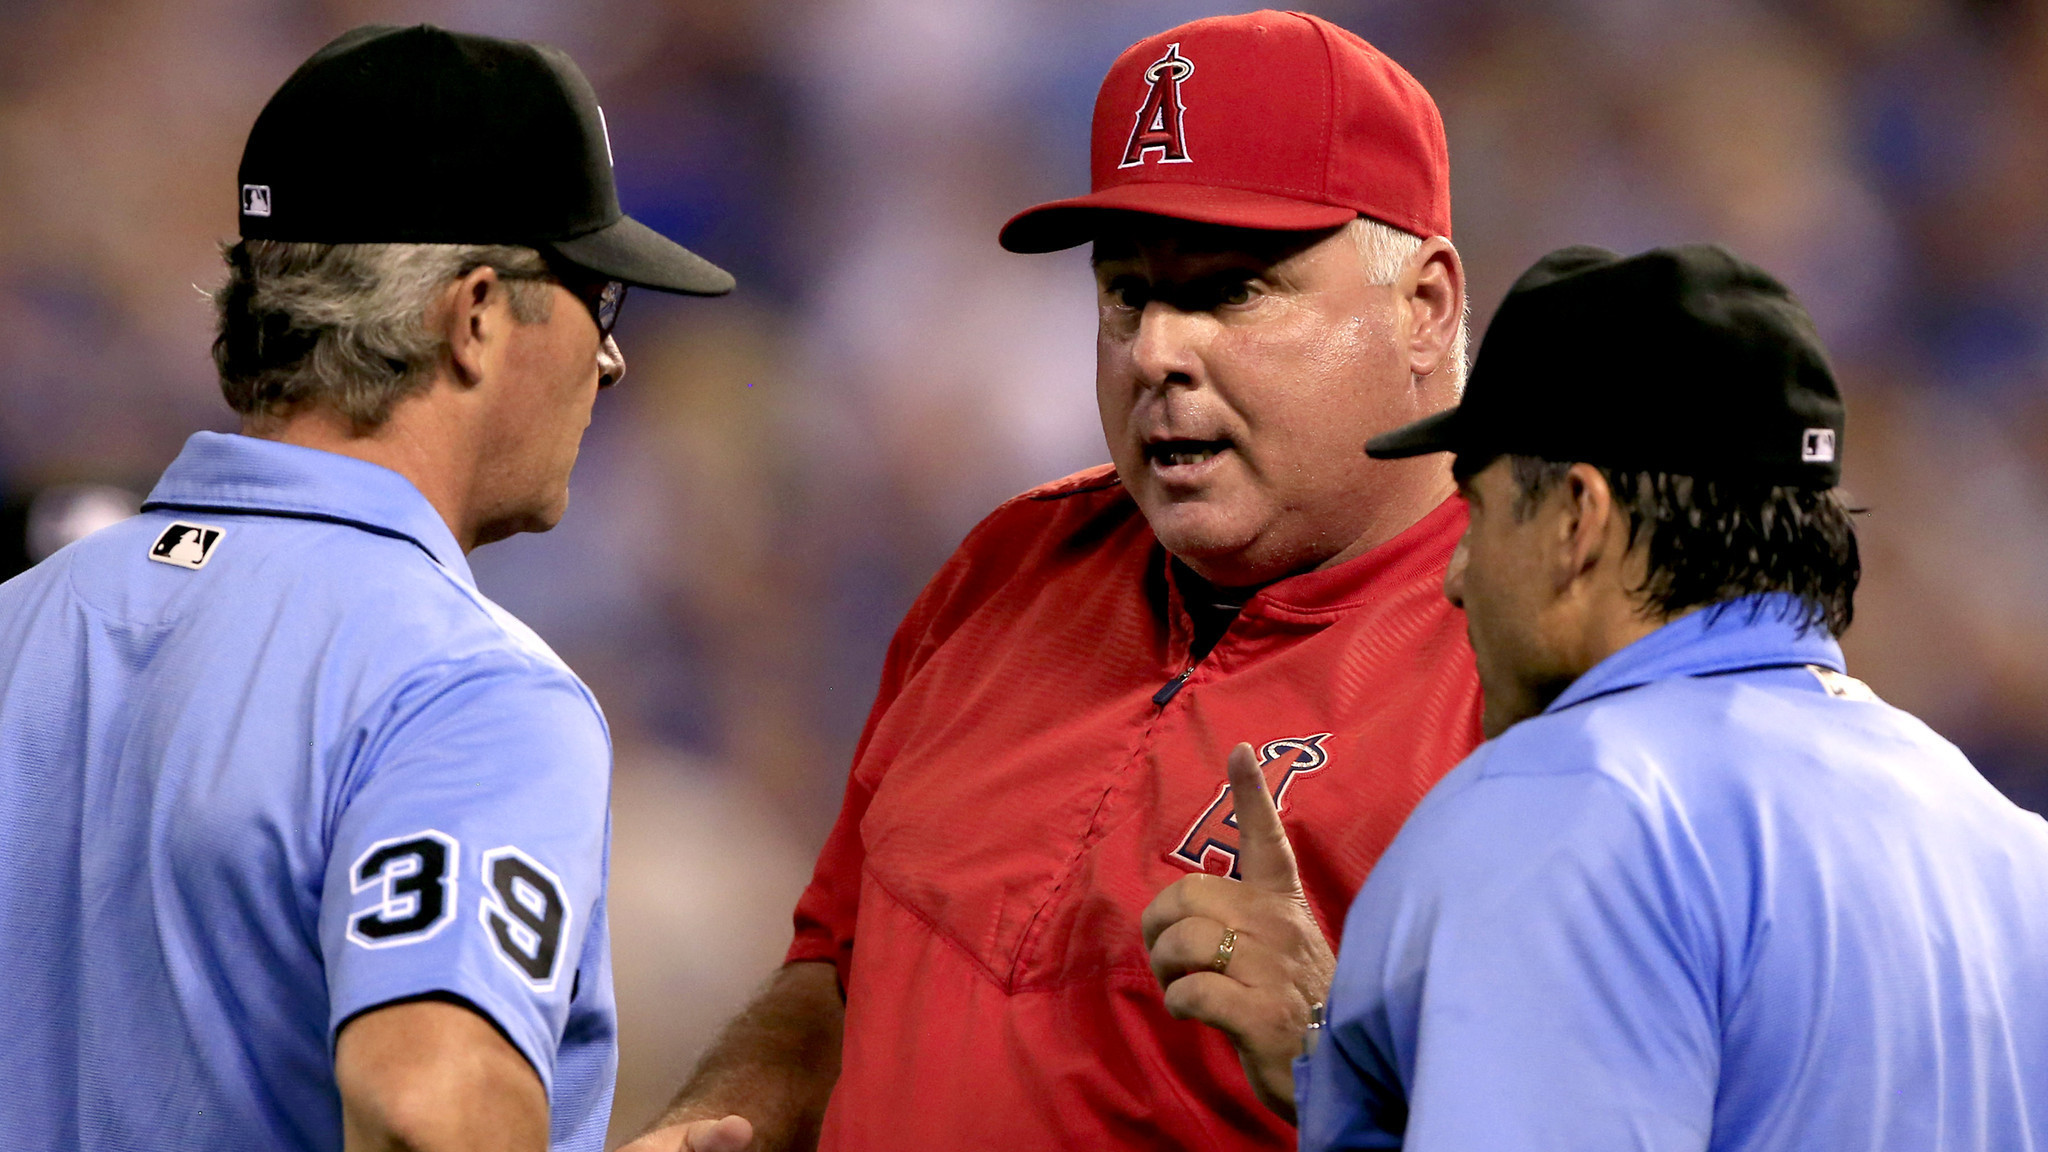 La-sp-angels-mike-scioscia-20160819-snap